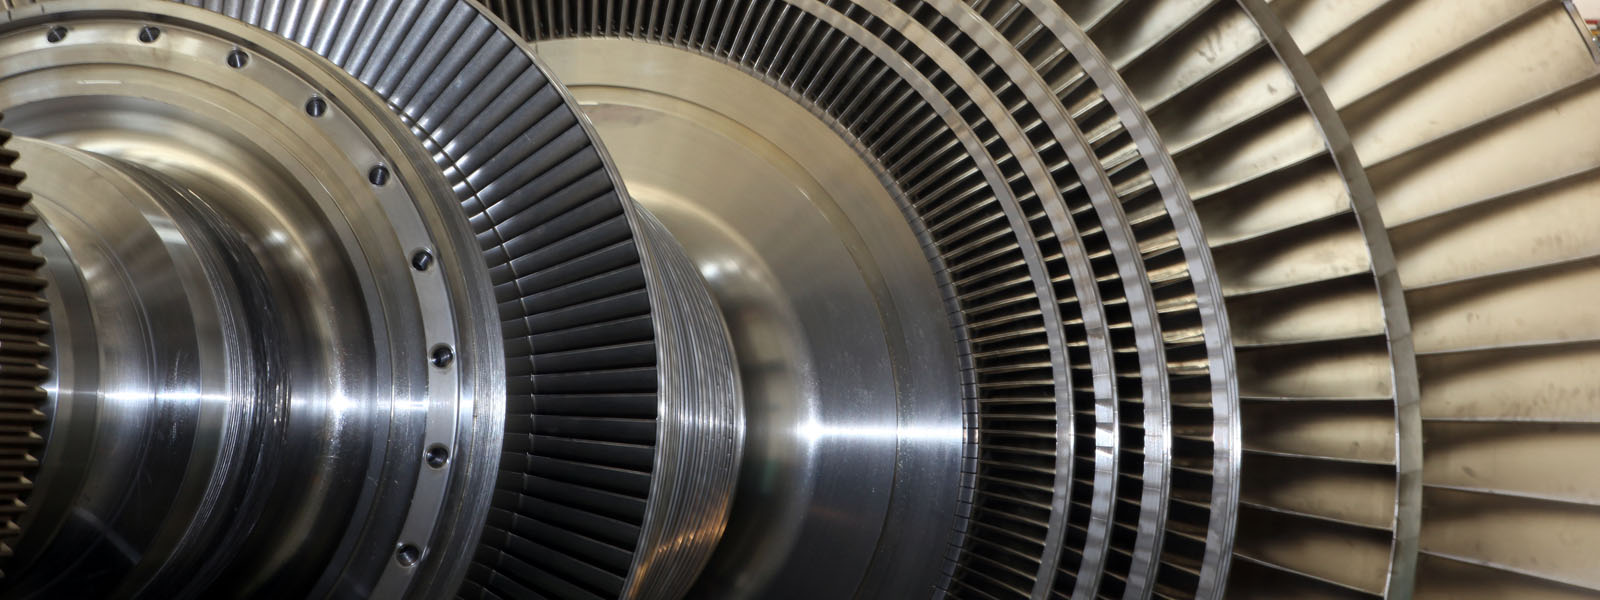 Steam Turbines